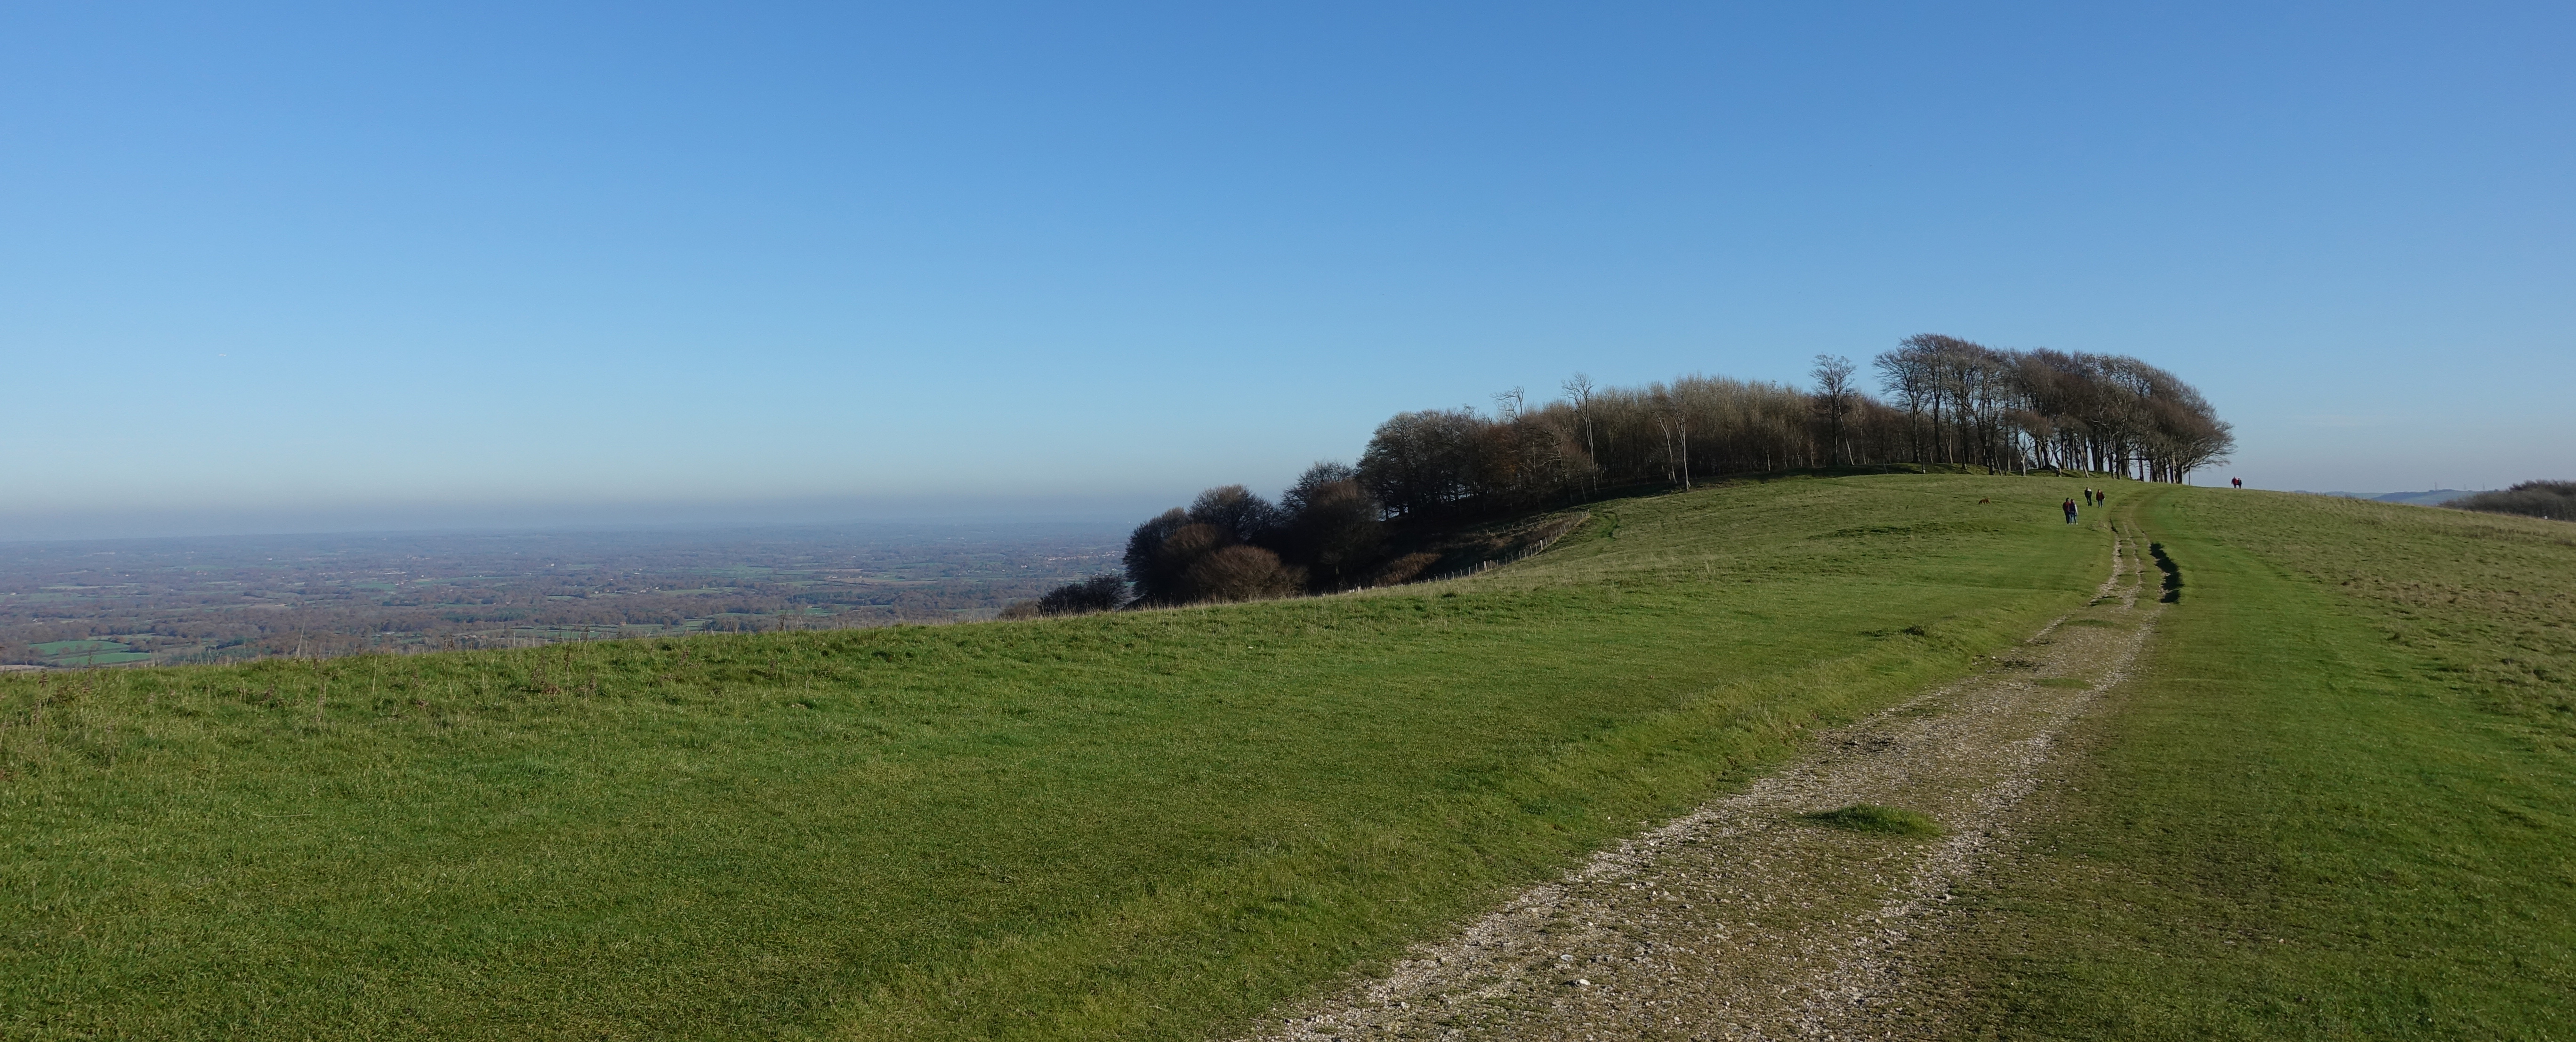 Approaching Chanctonbury Ring. A feature of the South Downs, it is visible for miles to the north and south. The original ring of trees, long since replaced, were planted on the site of a prehistoric hill fort